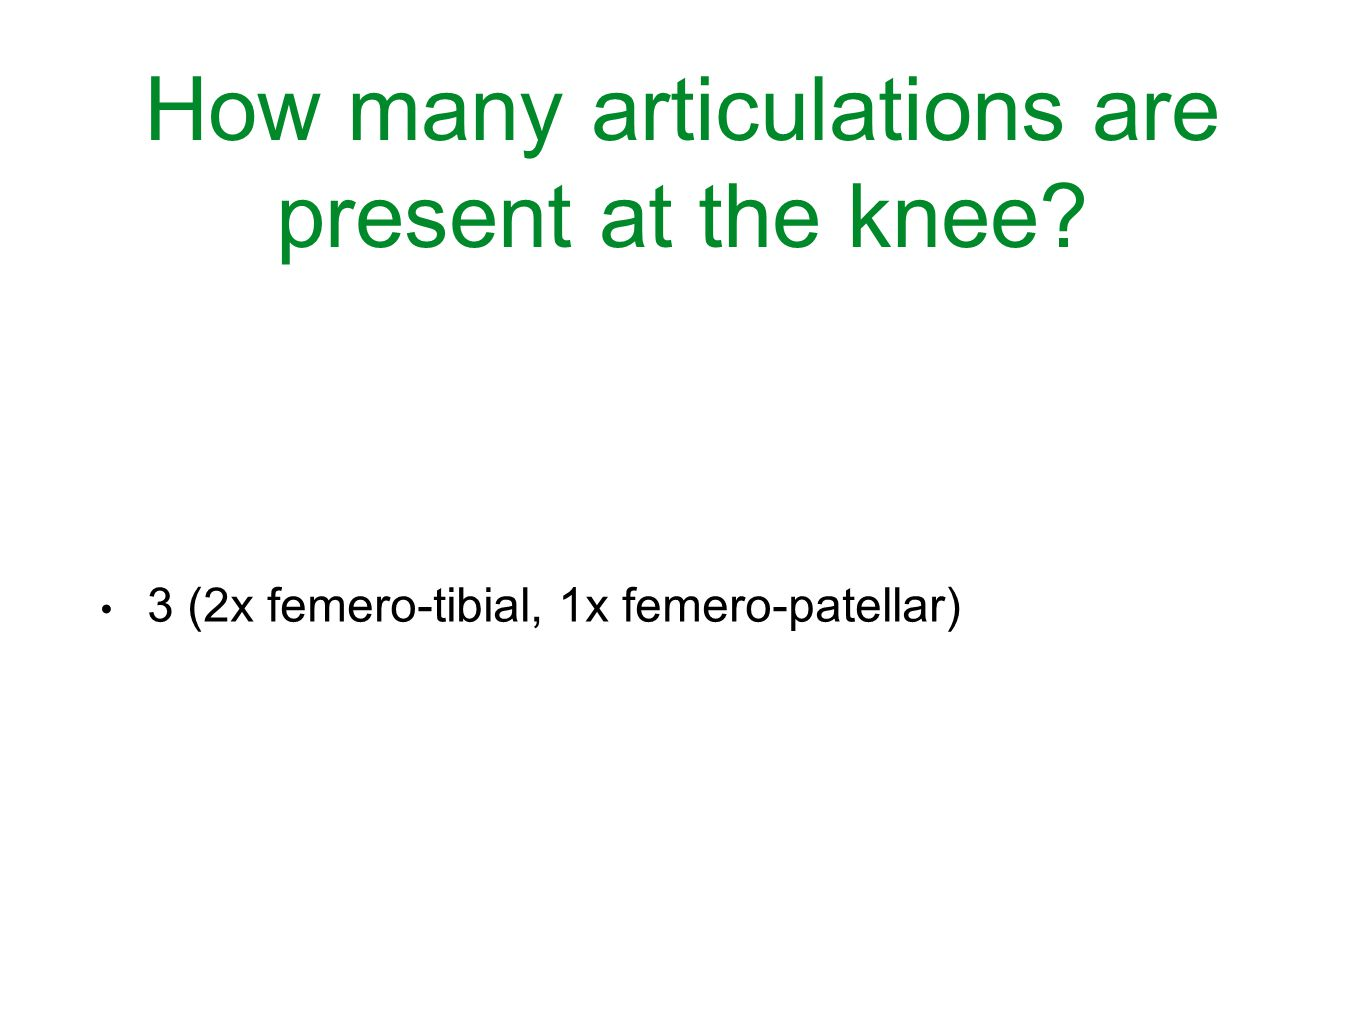 How many articulations are present at the knee